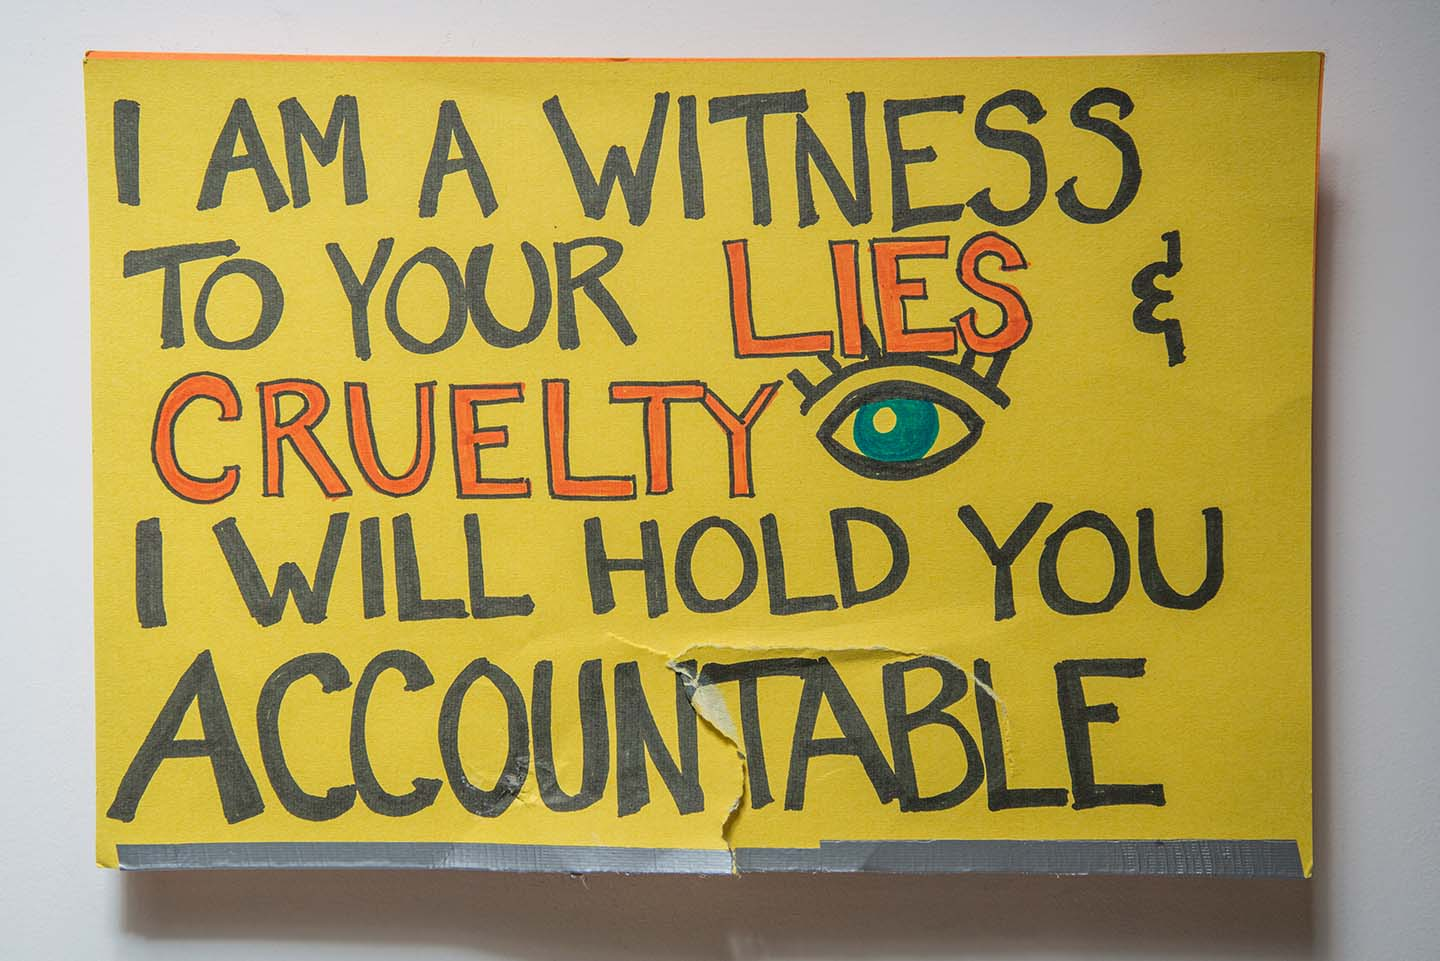 I Am a Witness to Your Lies & Cruelty I Will Hold You Accountable/ #yugemistake